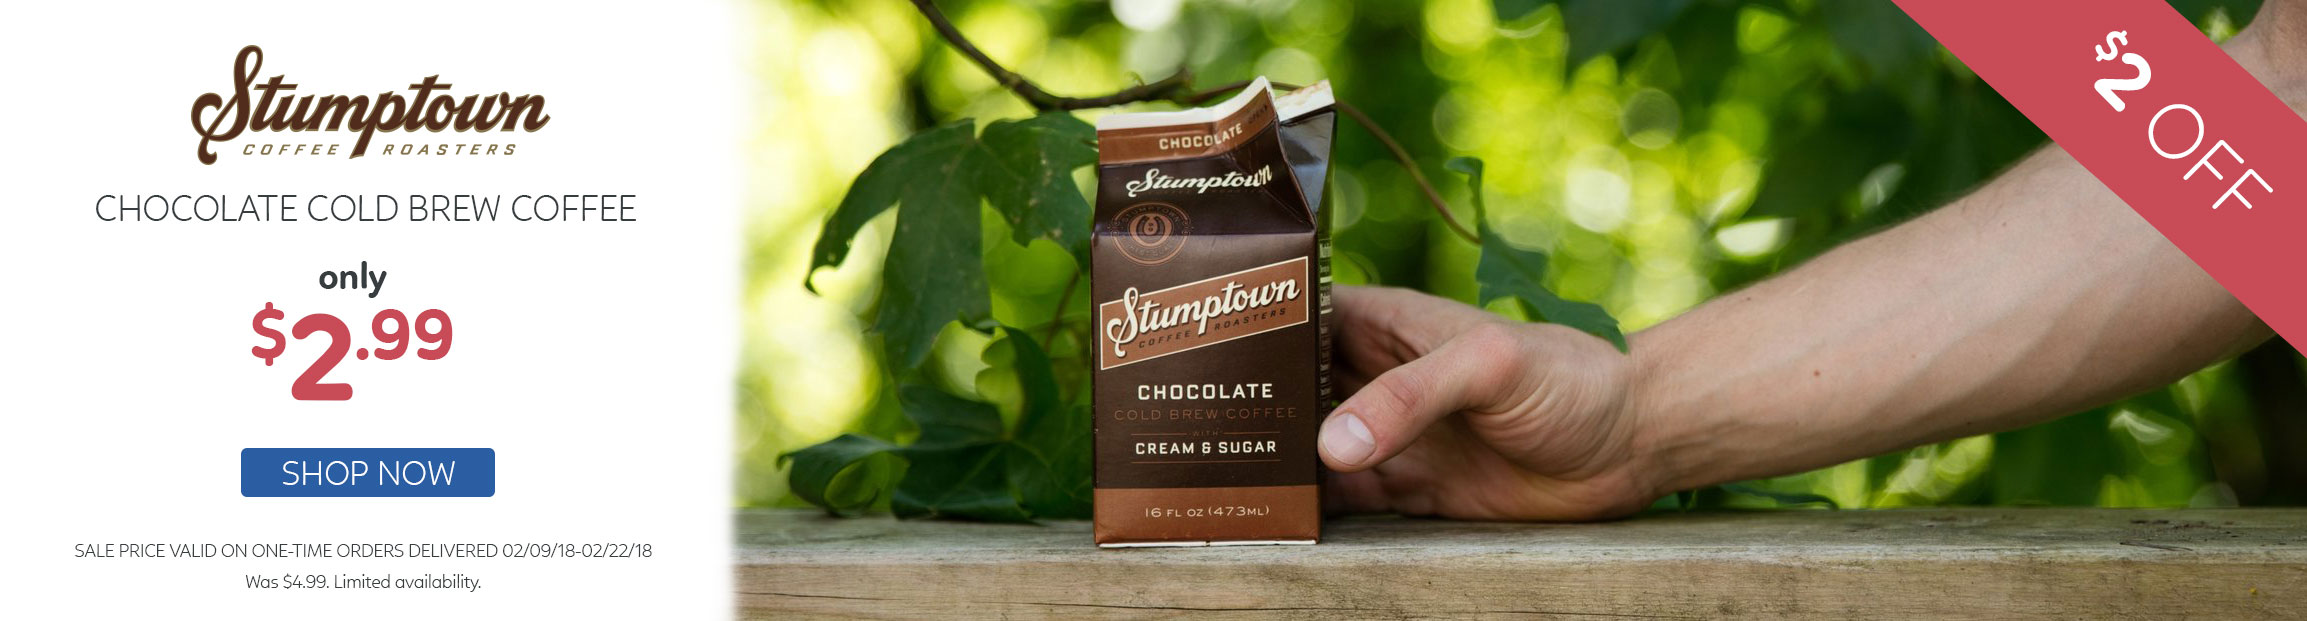 Stumptown Chocolate Cold Brew $2 Off